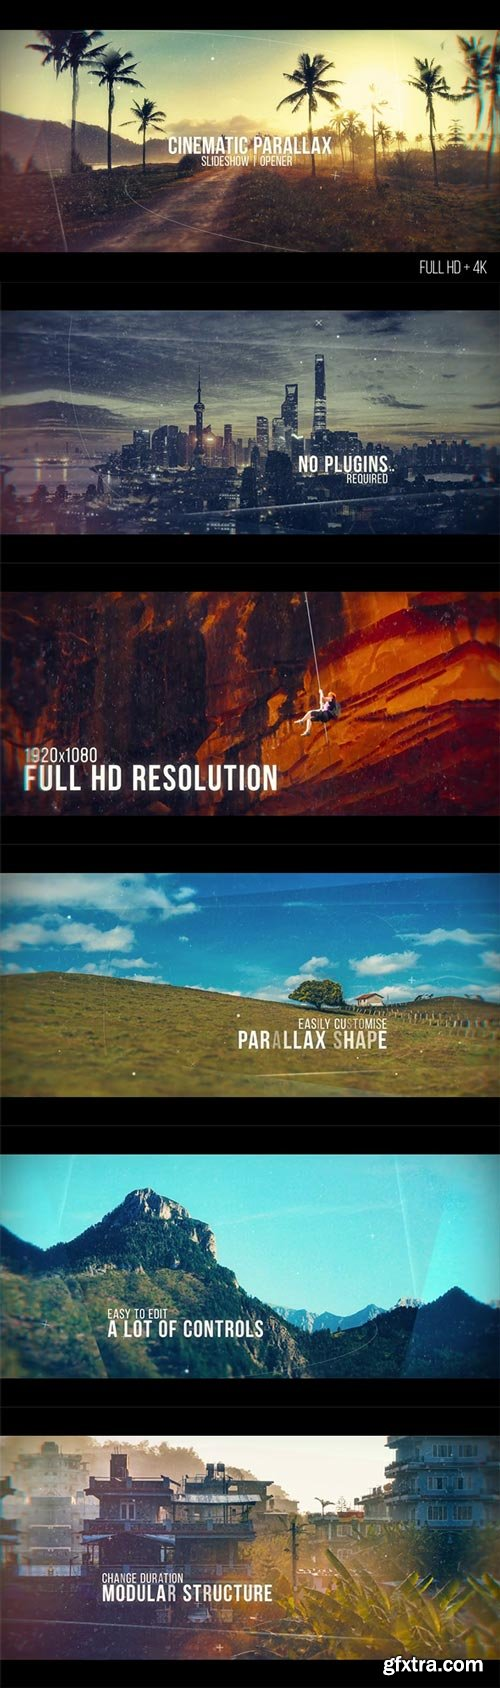 Videohive - Cinematic Parallax Slideshow - 20481472